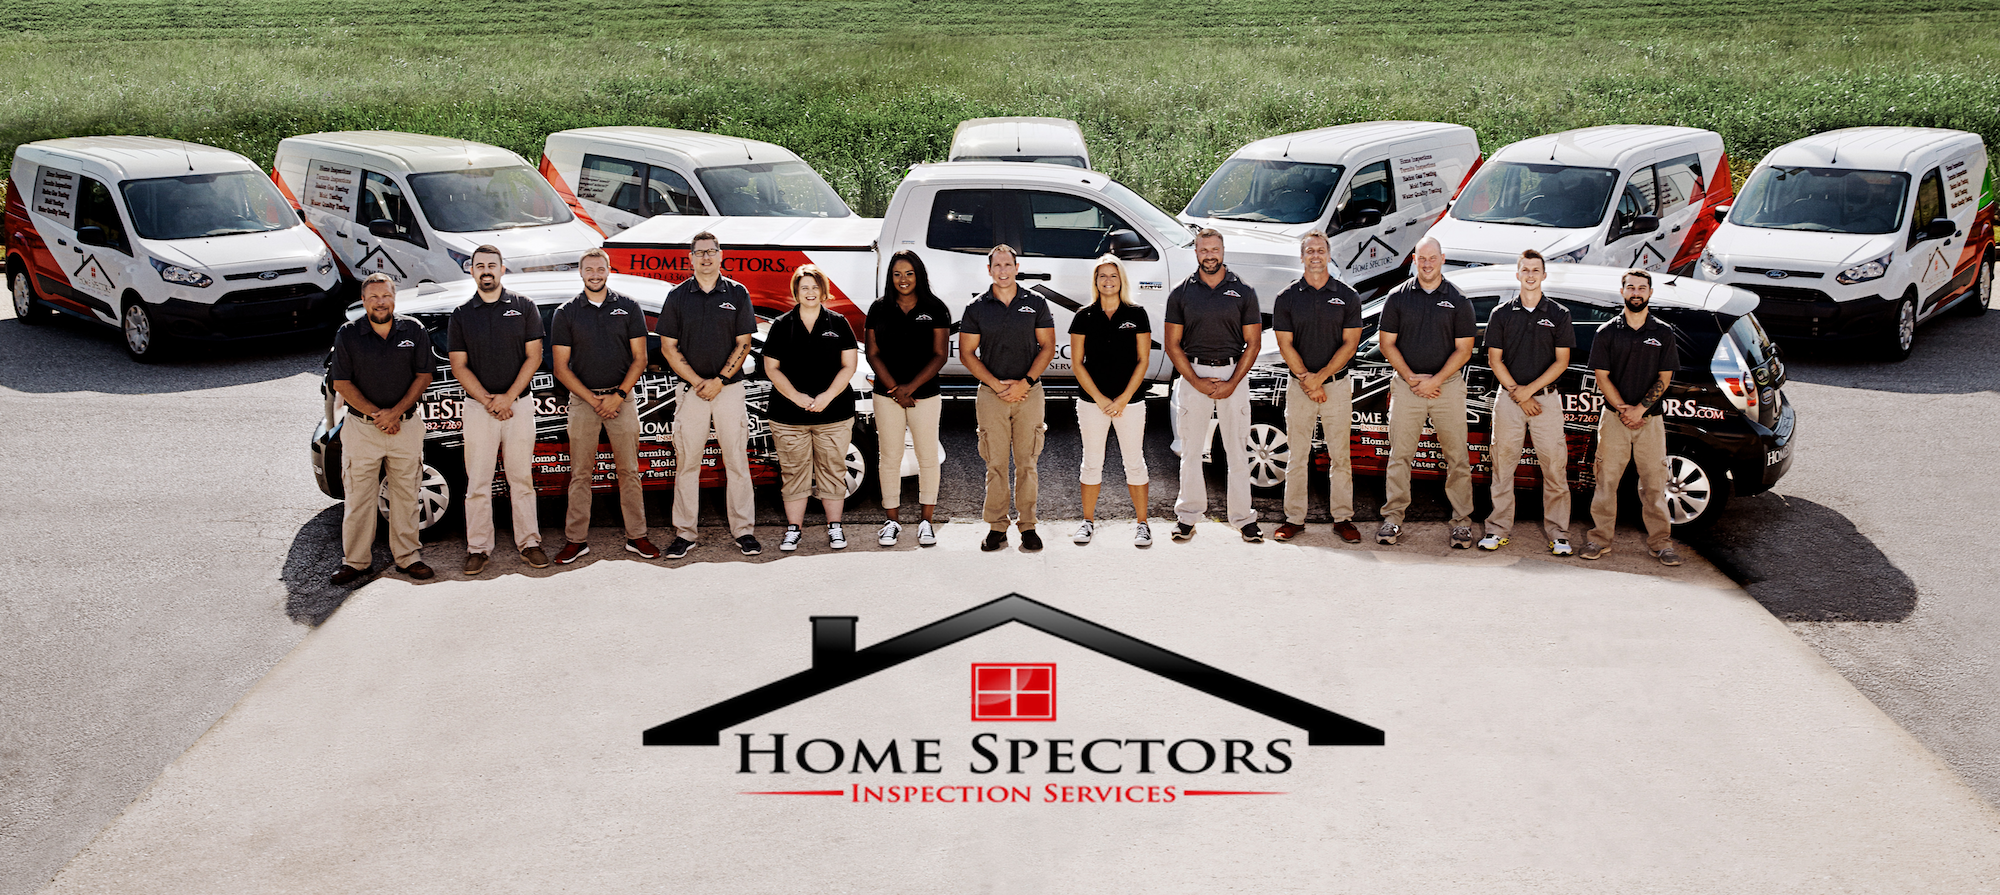 greensboro home inspector, raleigh home inspection, home inspector winston salem